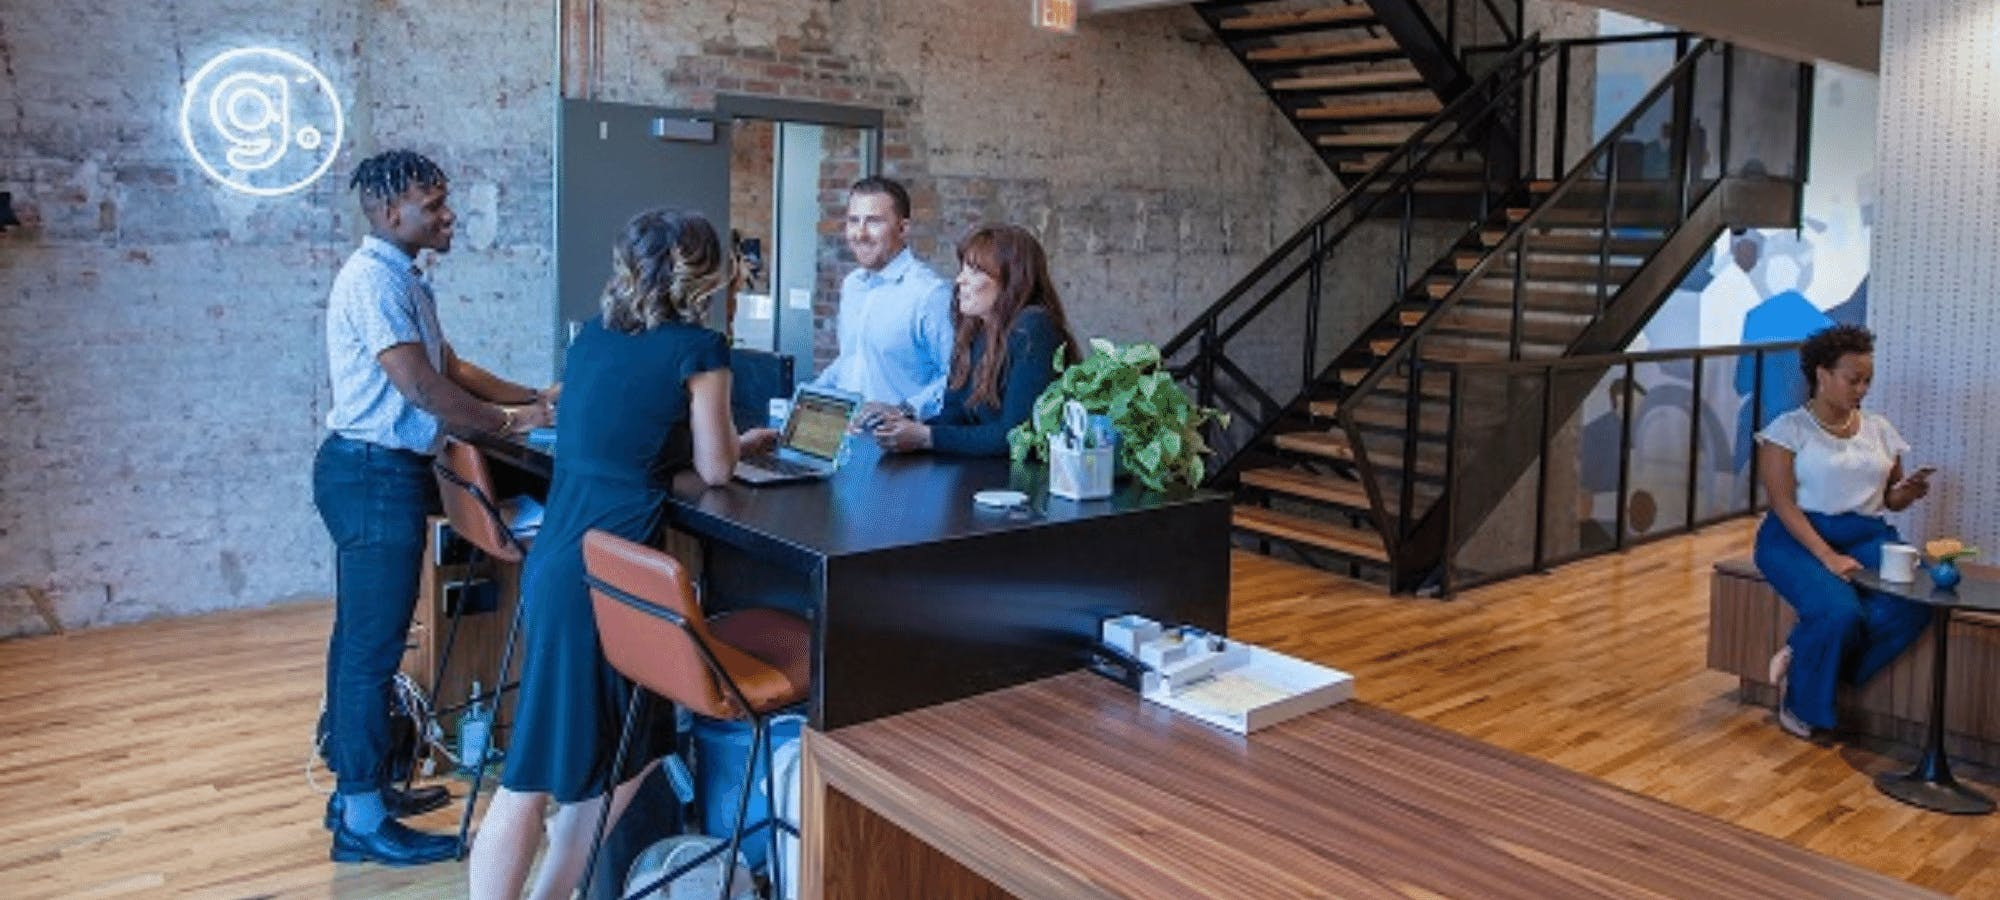 Co-Working Spaces & Shared Office Spaces in Richmond